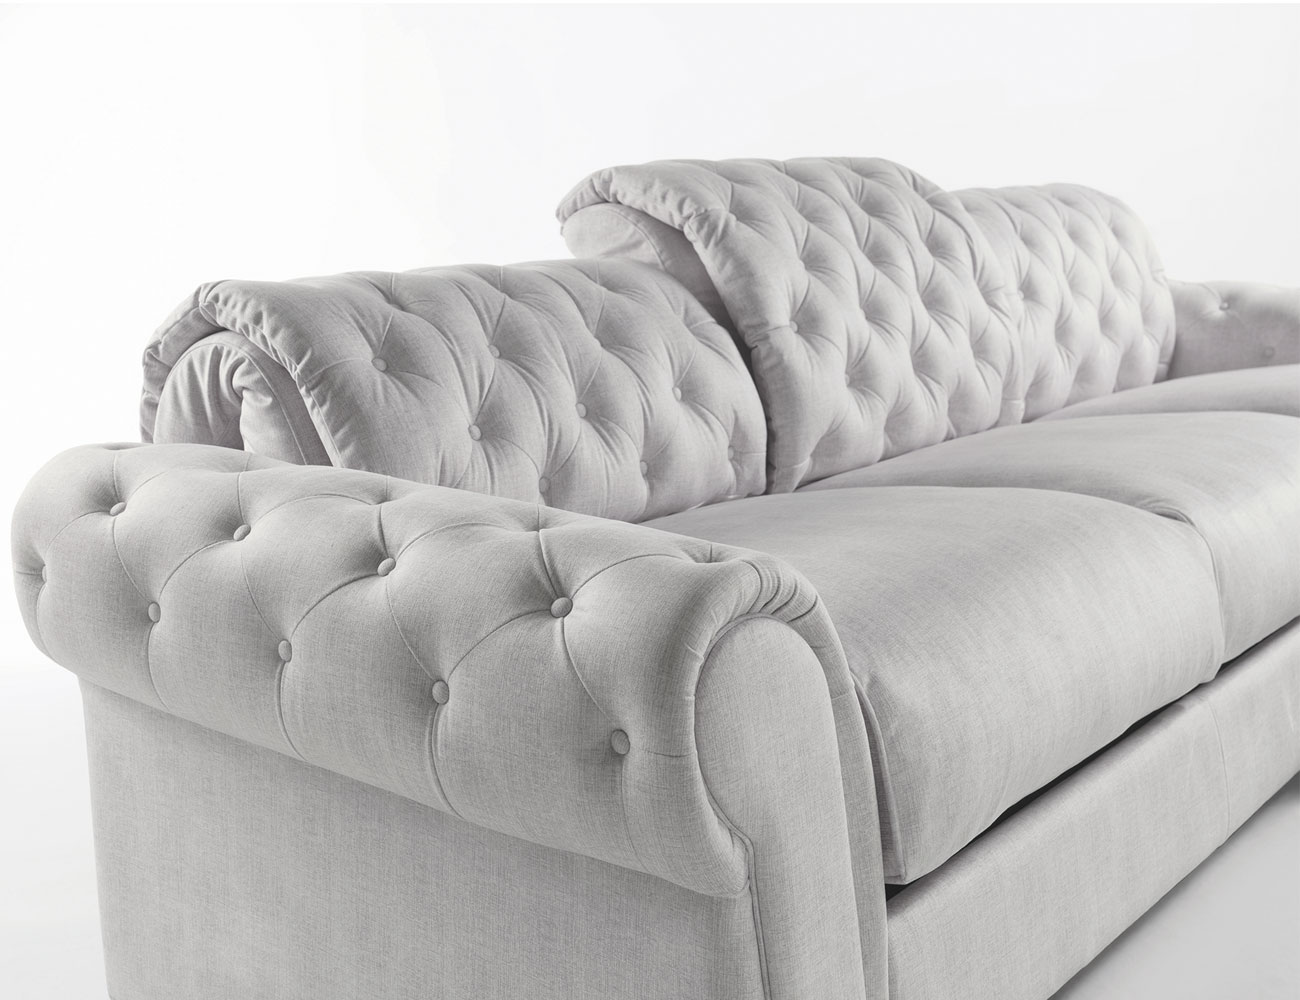 Sofa chaiselongue gran lujo decorativo capitone blanco tela 146